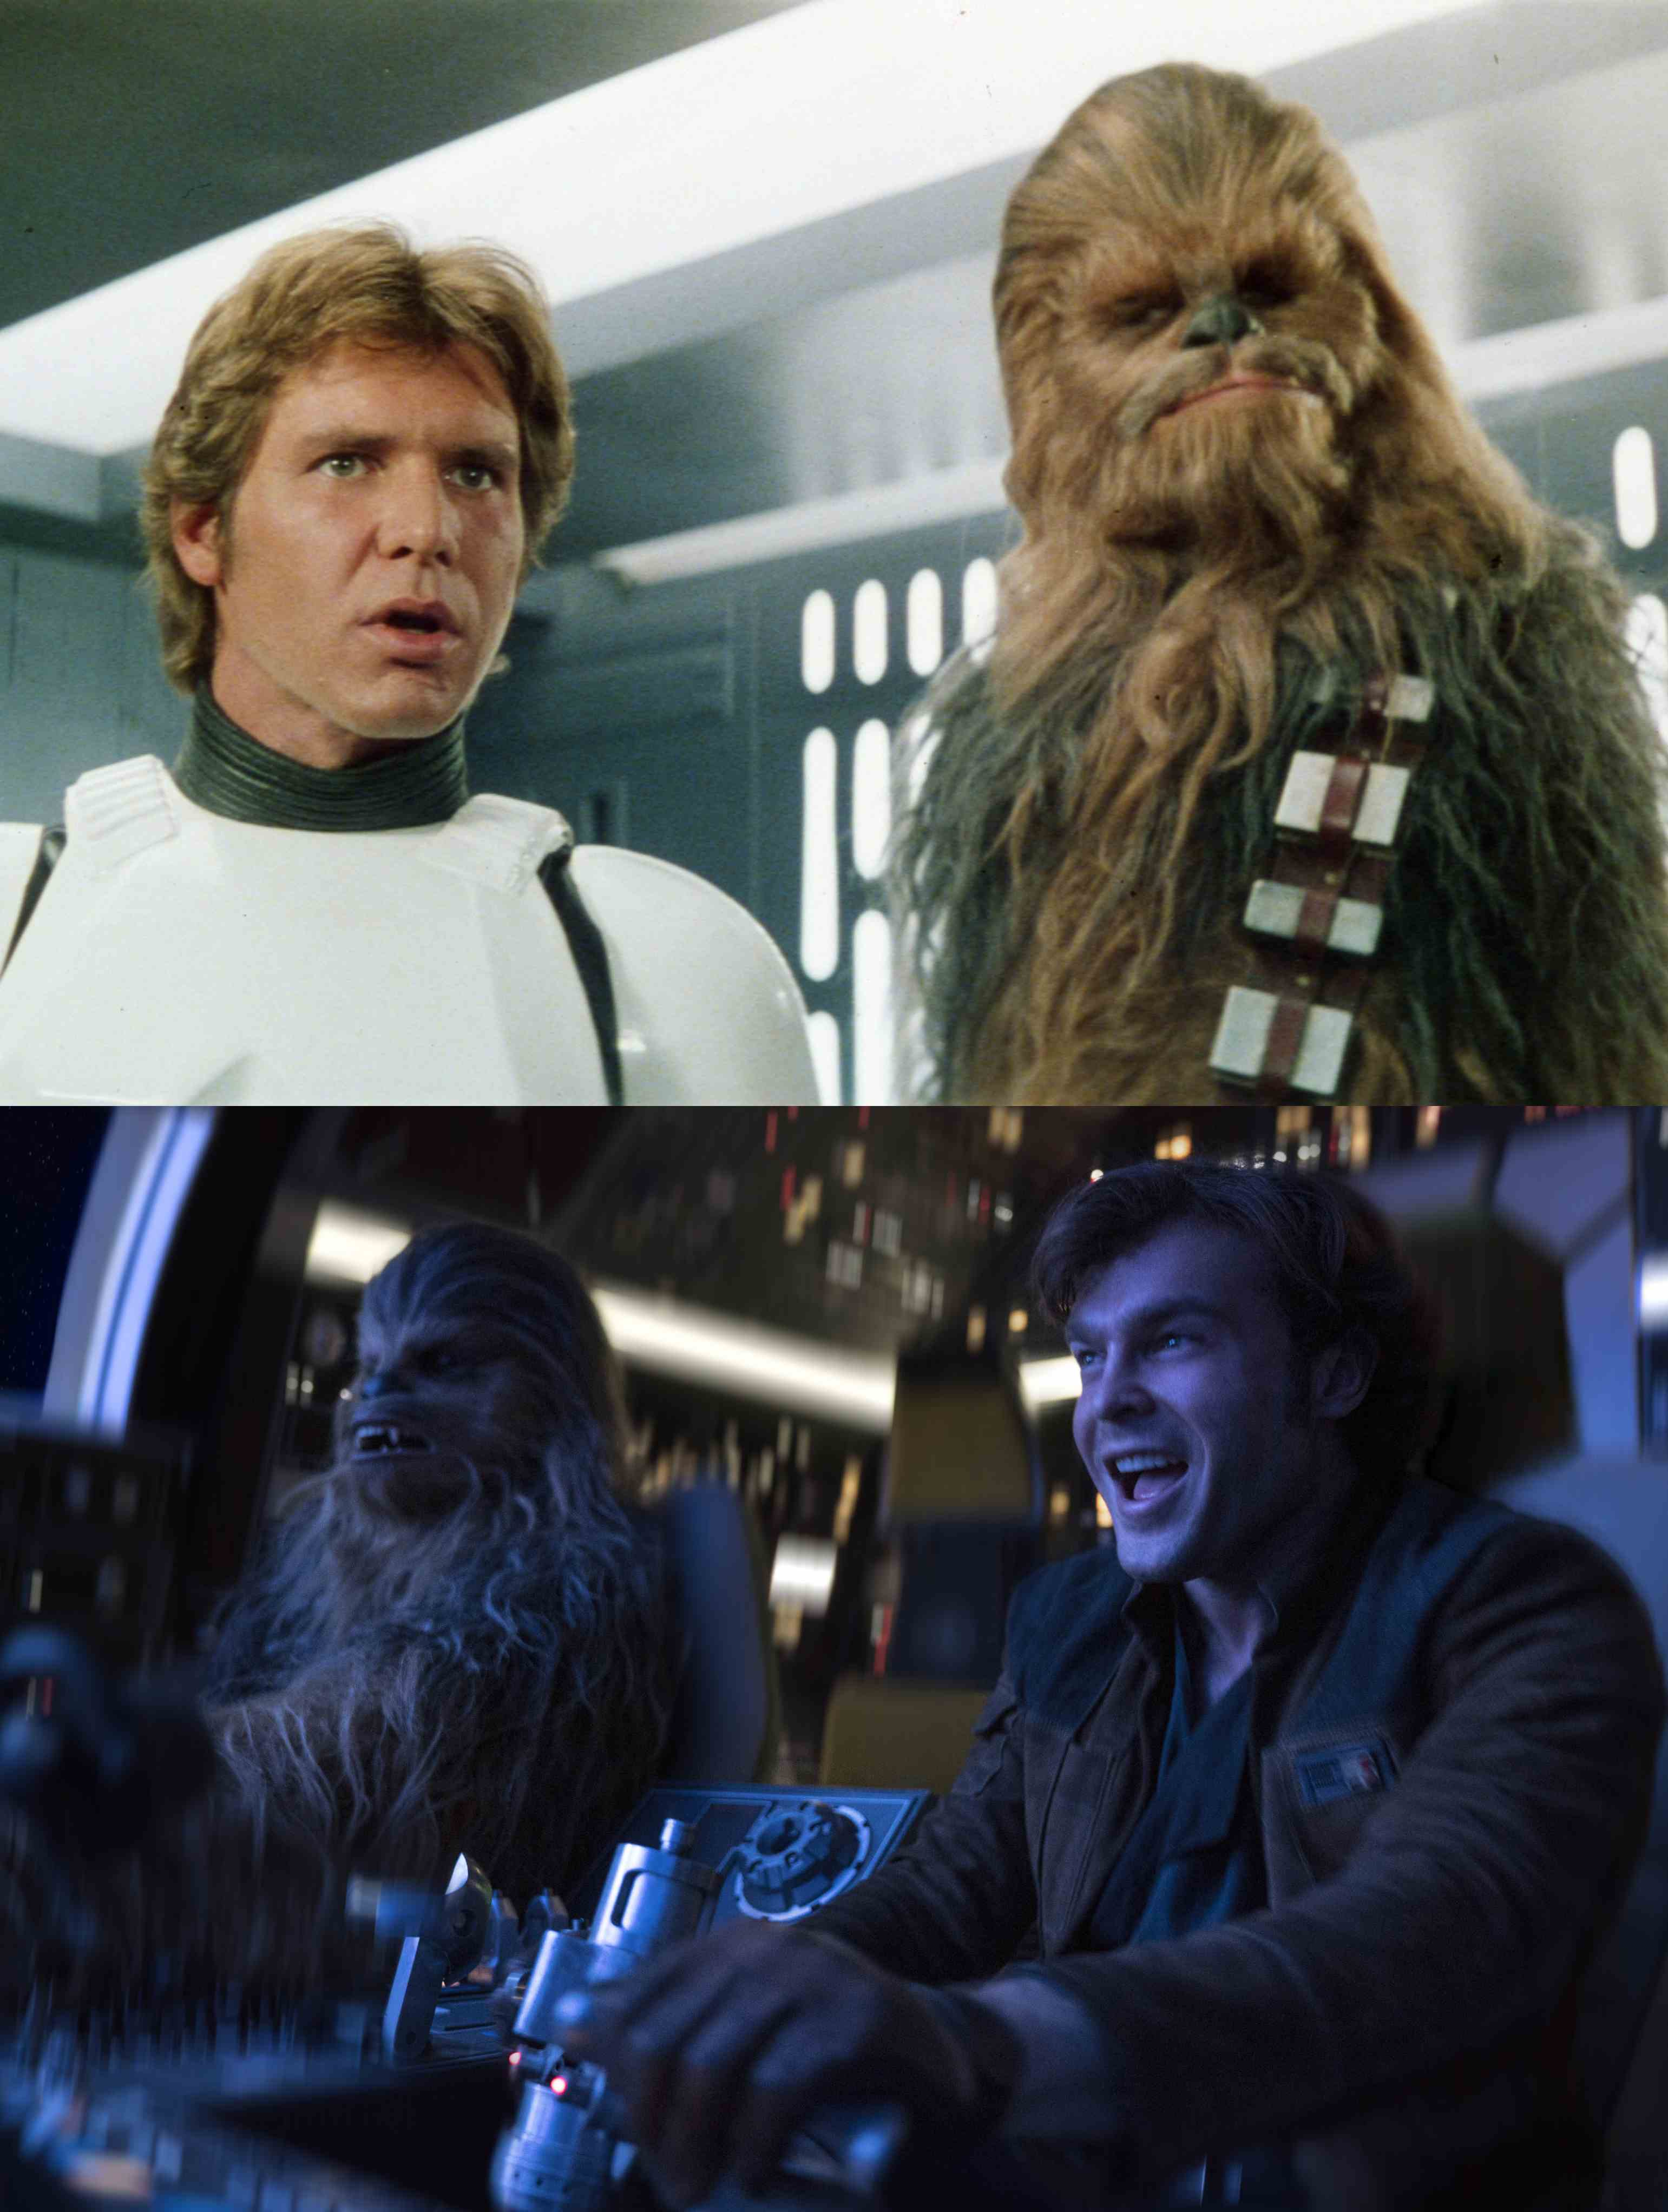 Harrison Ford and Peter Mayhew (above) and Aiden Ehrenreich and Joonas Suotamo (below) as Hans Solo and Chewbacca. Image credit: Lucasfilm.